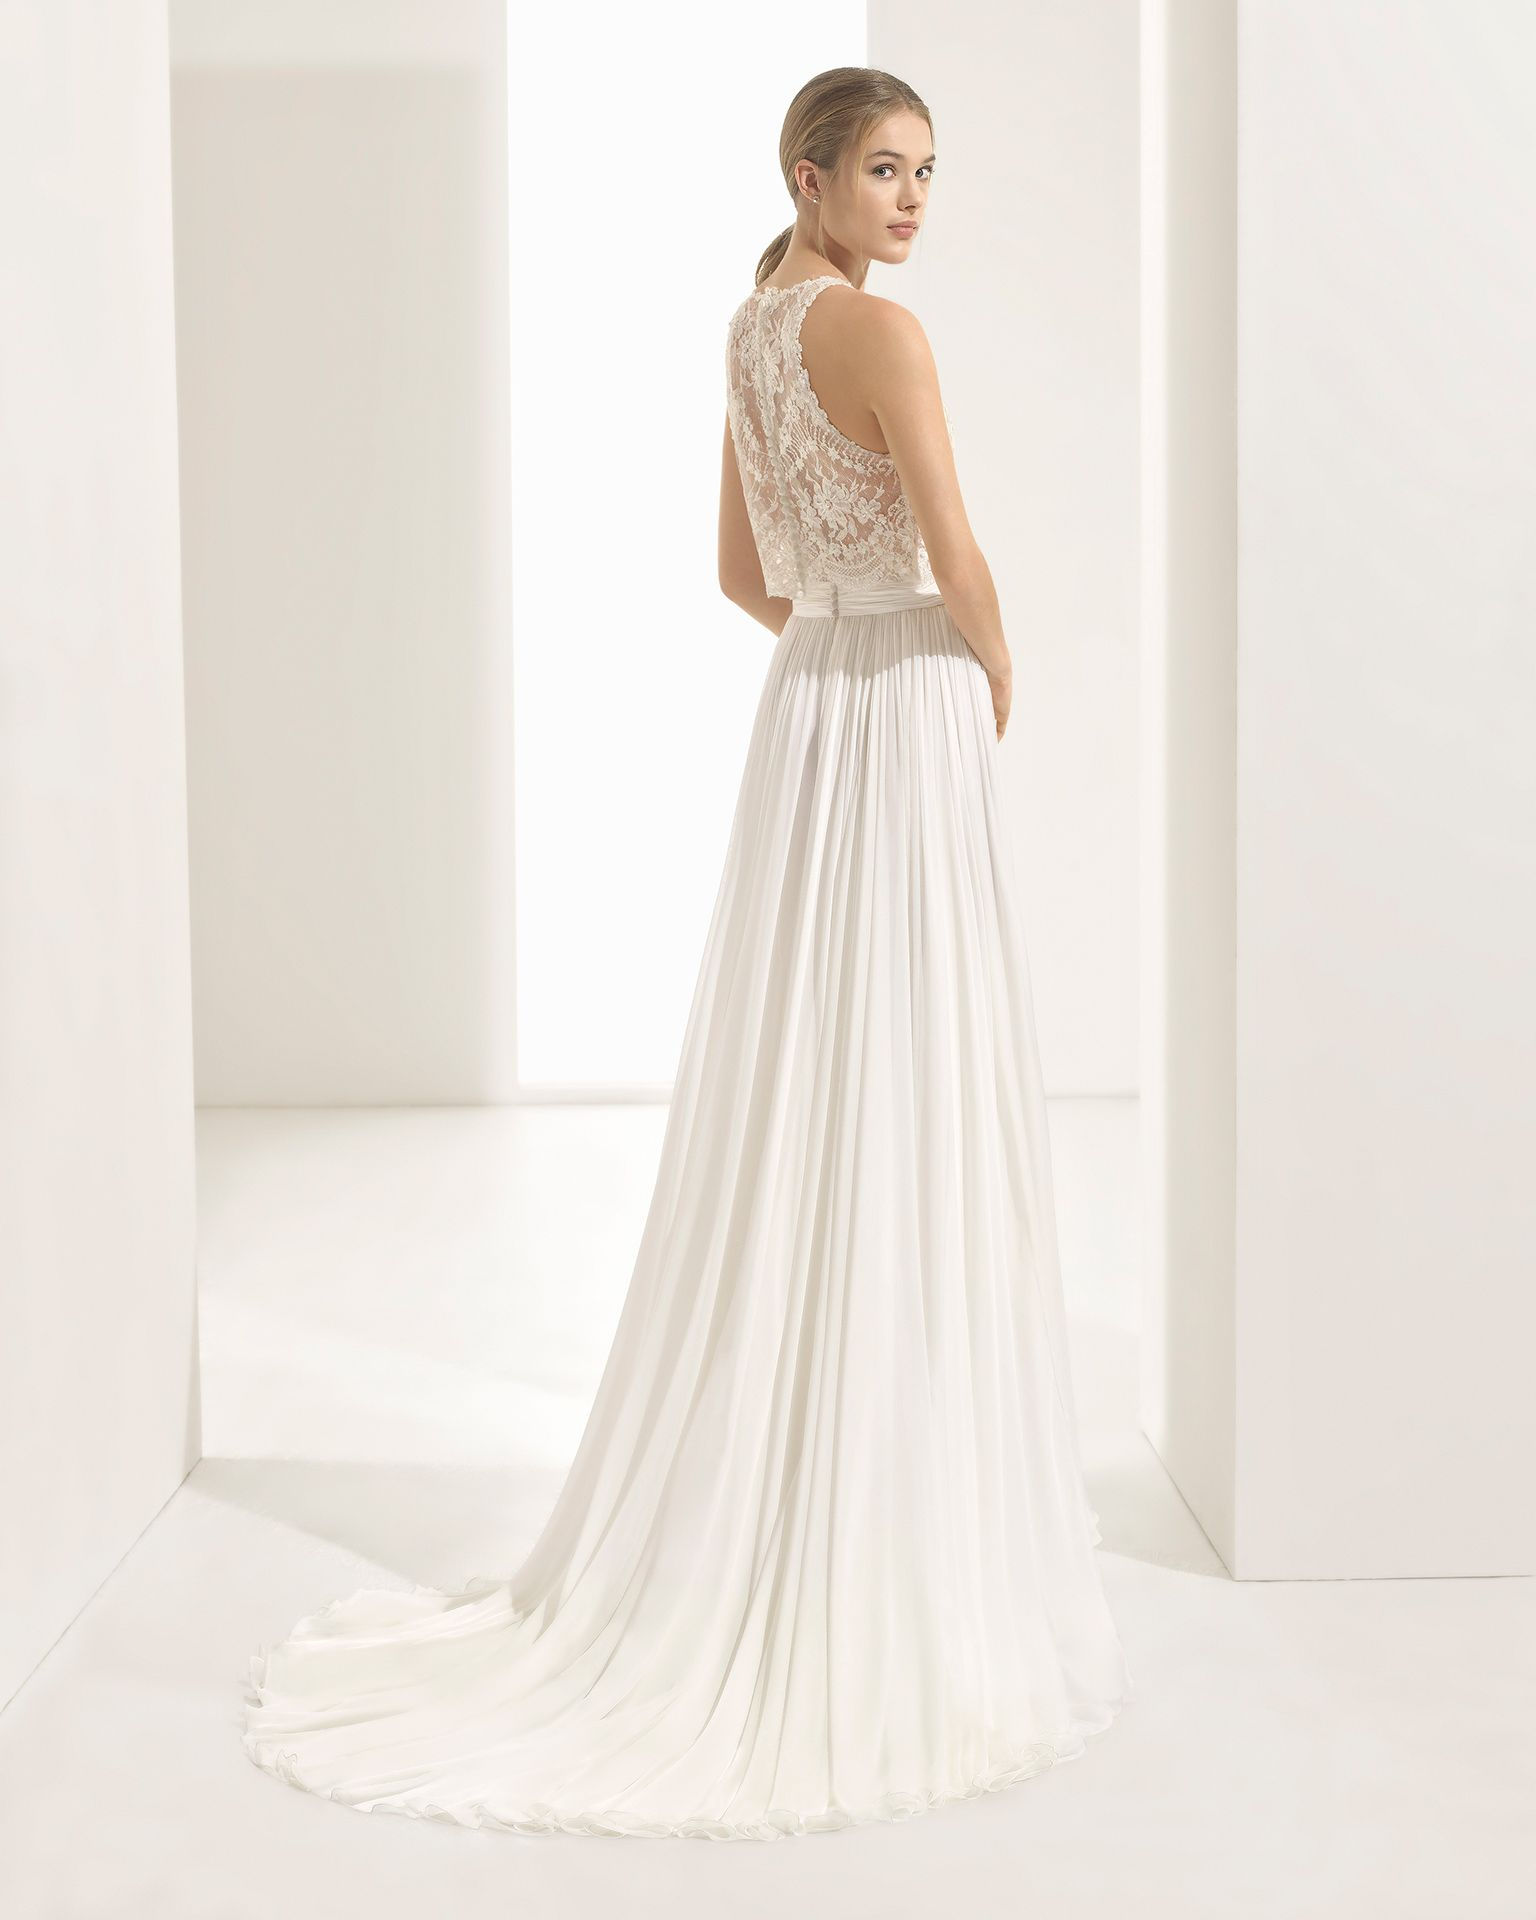 be59bbdf12428 Boho-style beaded lace and voile wedding dress with halter neckline and  sheer inserts, in natural/nude. 2018 Rosa Clará Couture Collection.